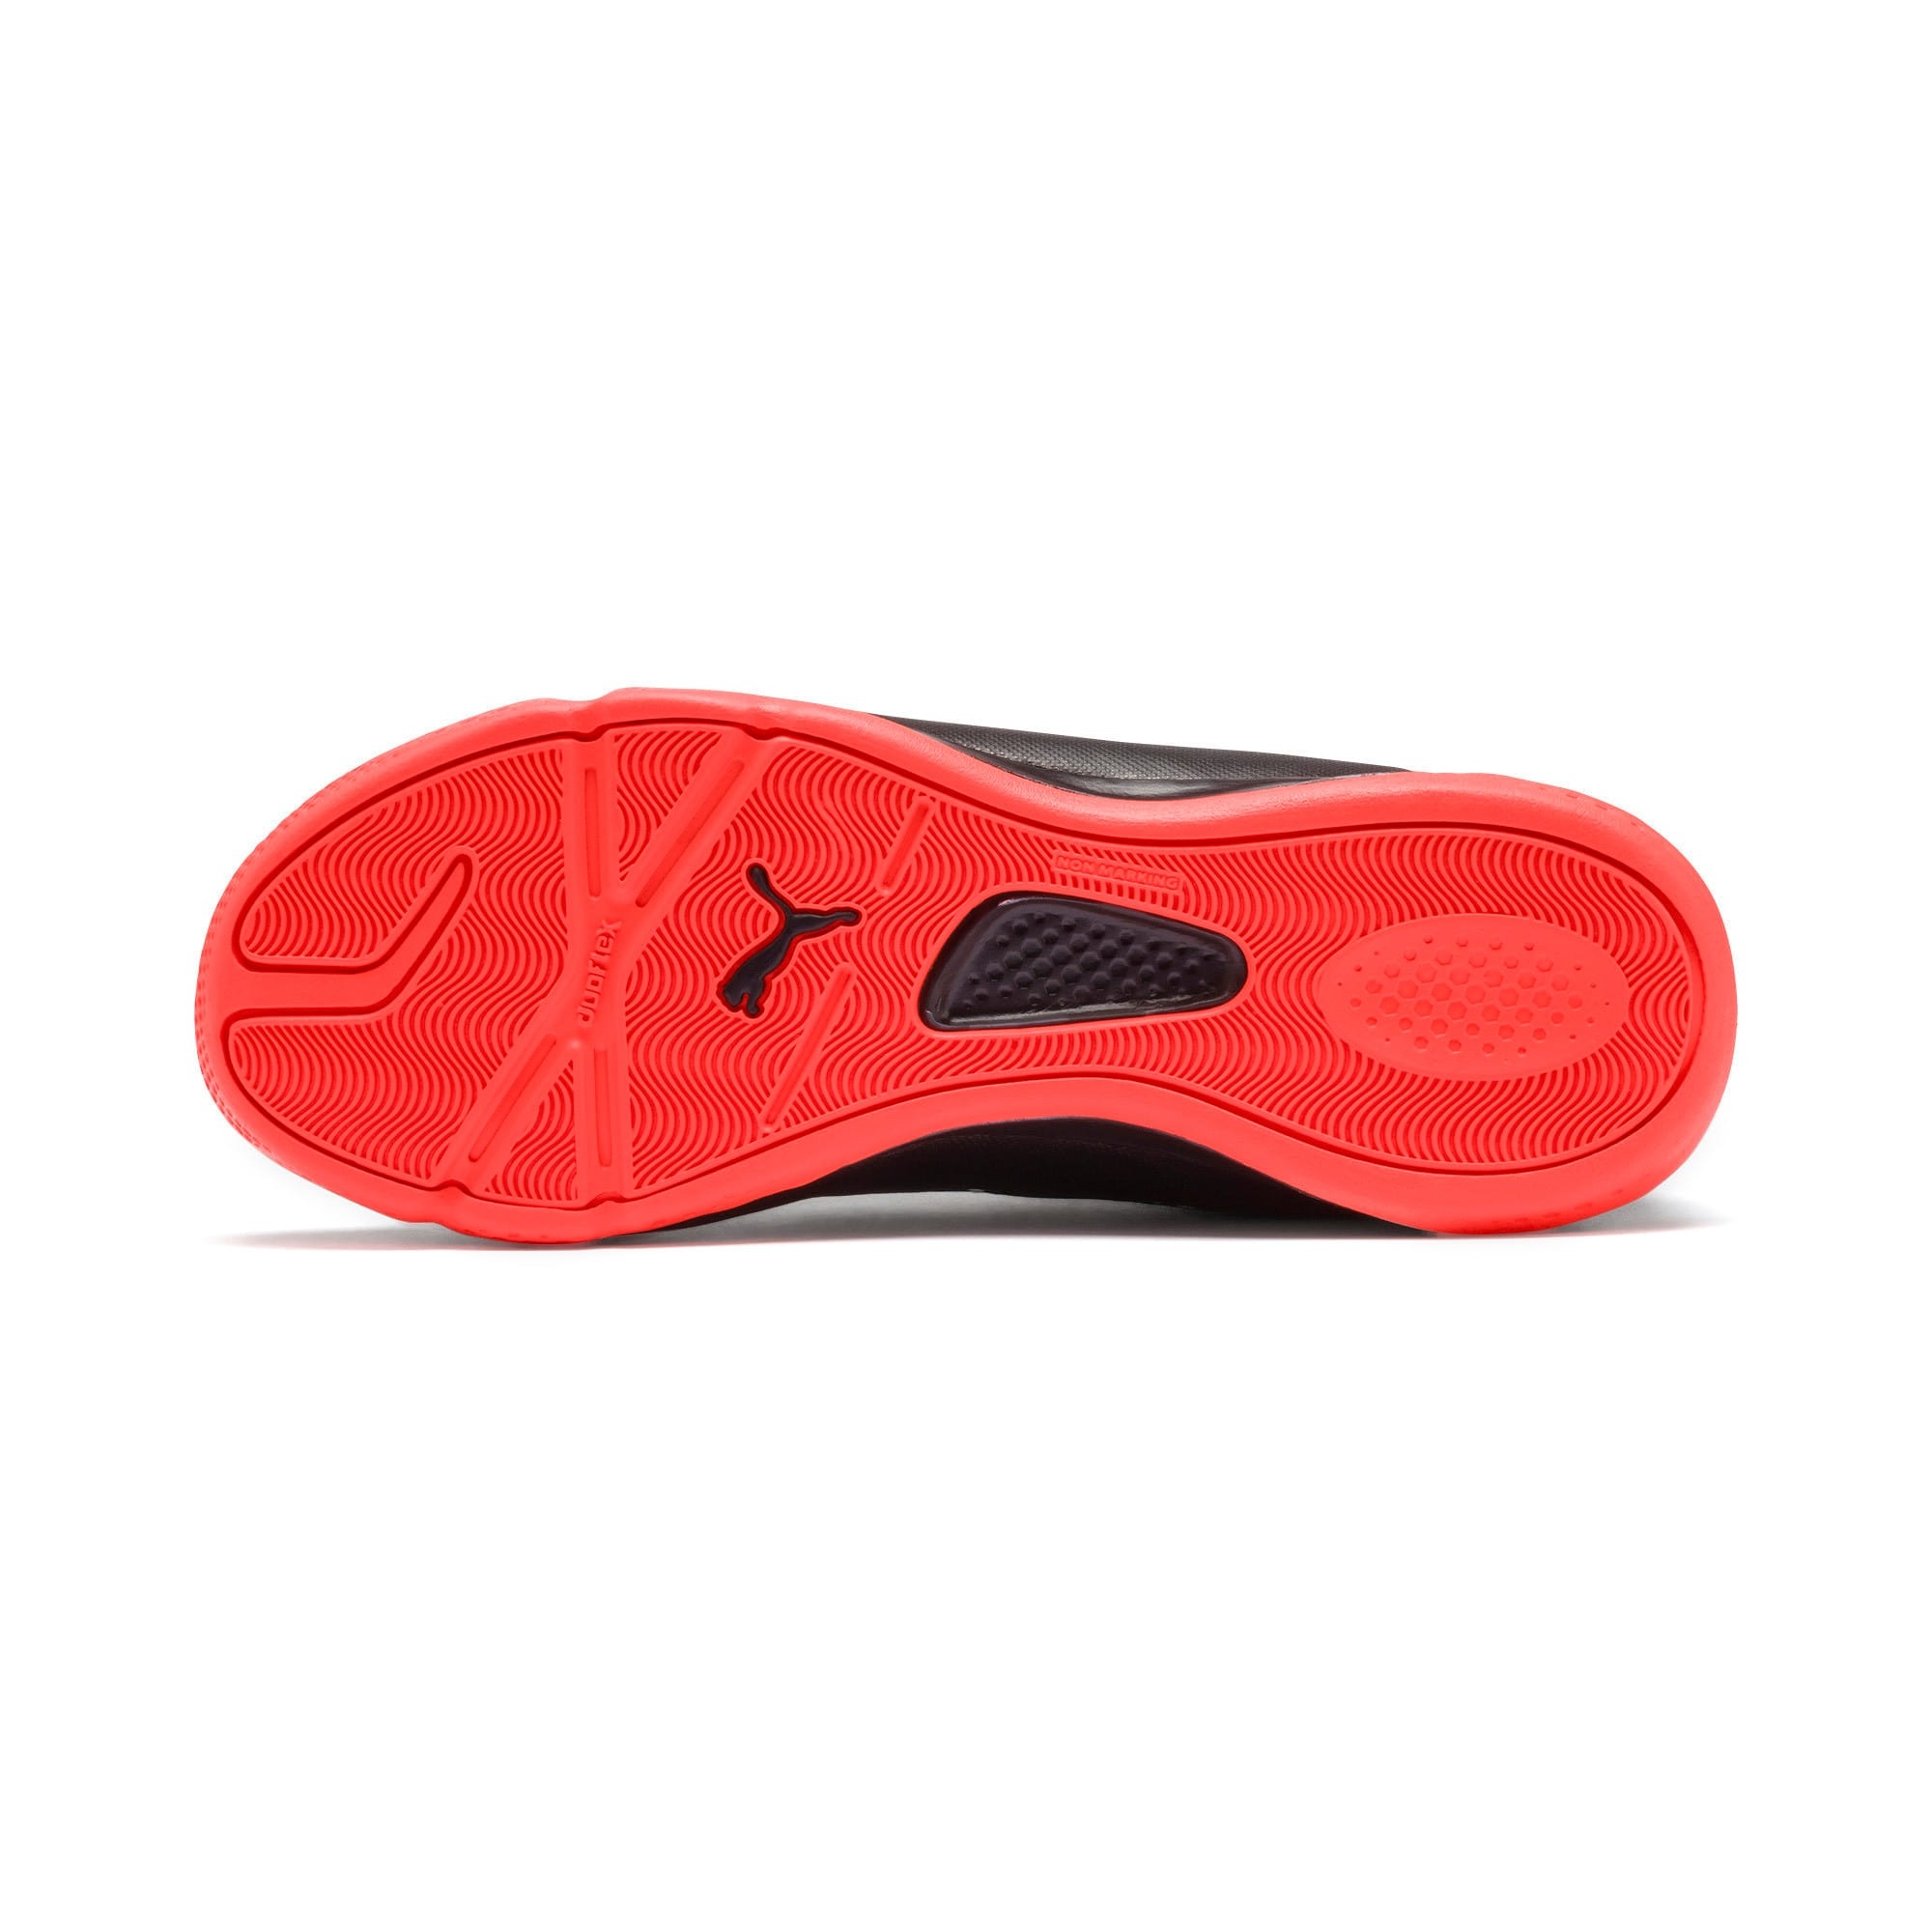 Thumbnail 4 of Sharp XT 2 Youth Trainers, Black-Puma White-Nrgy Red, medium-IND